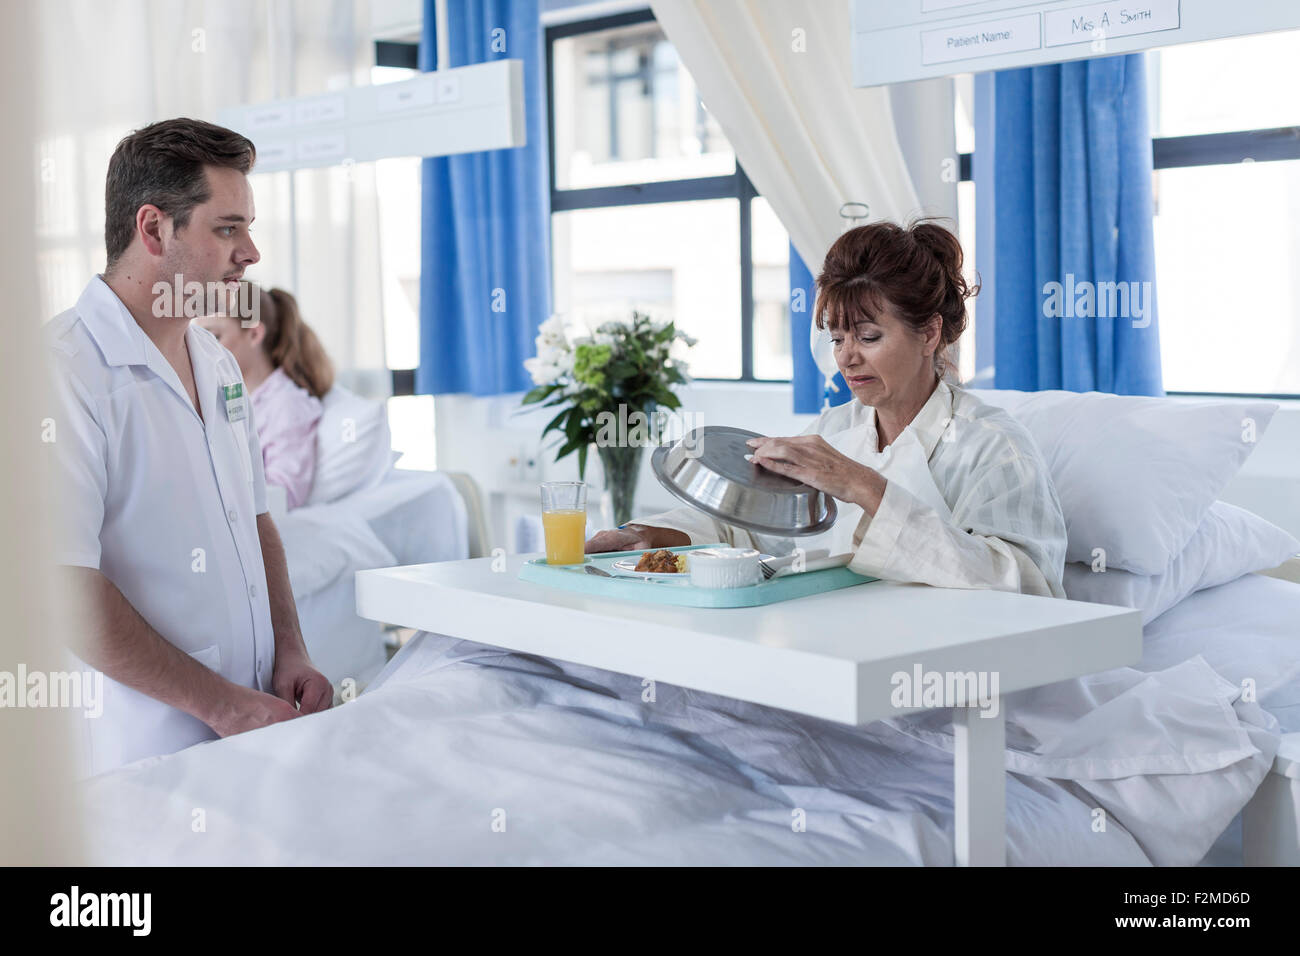 Nurse looking at skeptical patient receiving lunch - Stock Image